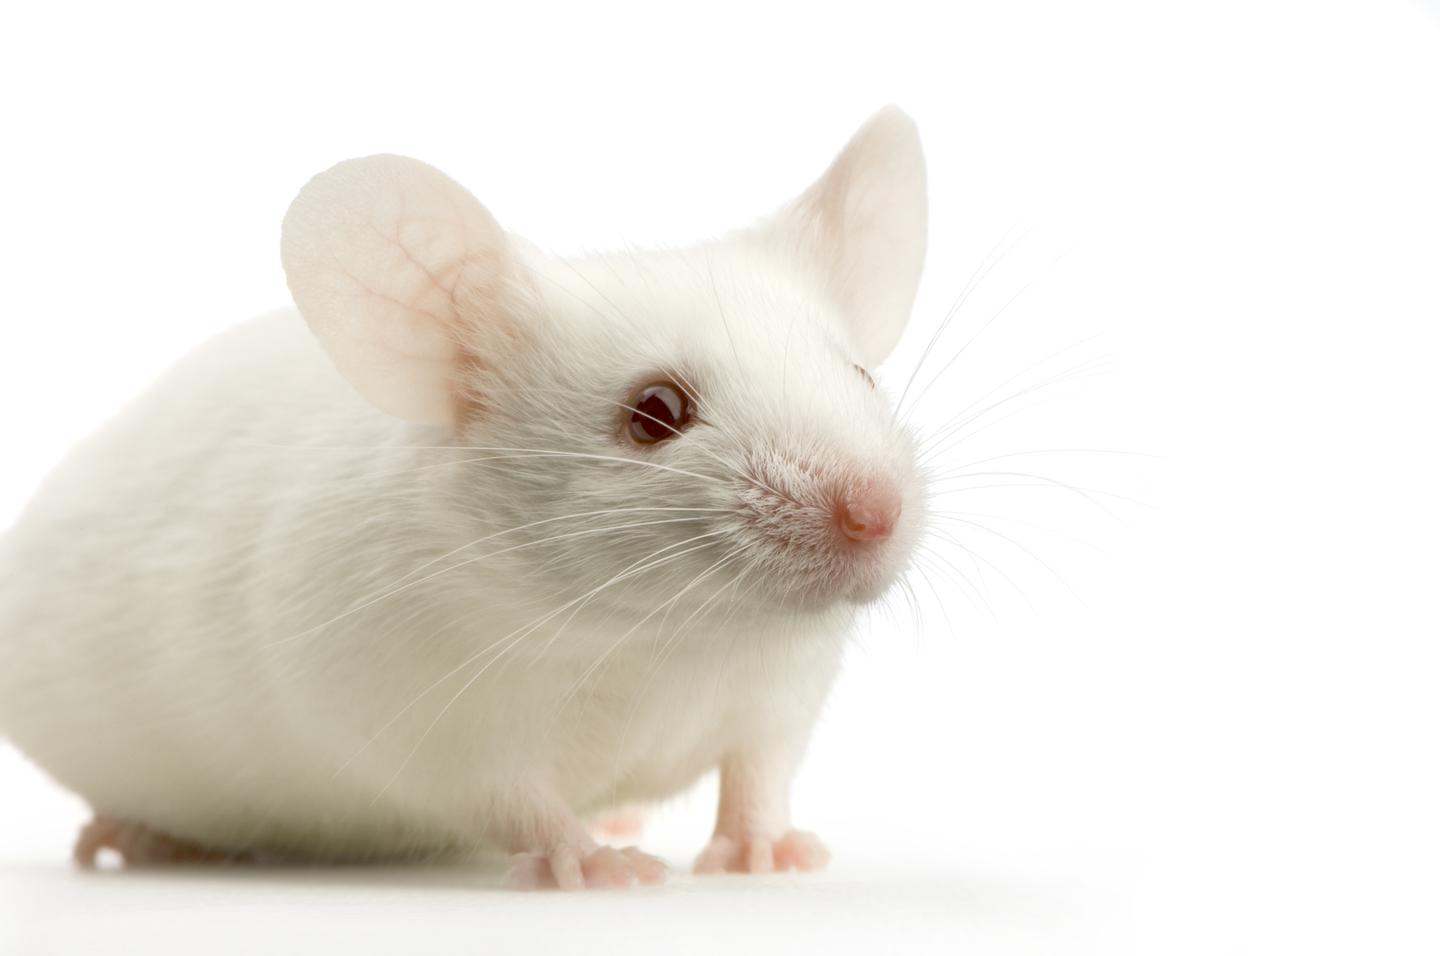 Researchers have reportedly restored near-normal vision to blind mice, using a prosthesis that incorporates the retina's natural neural code (Photo: Shutterstock)